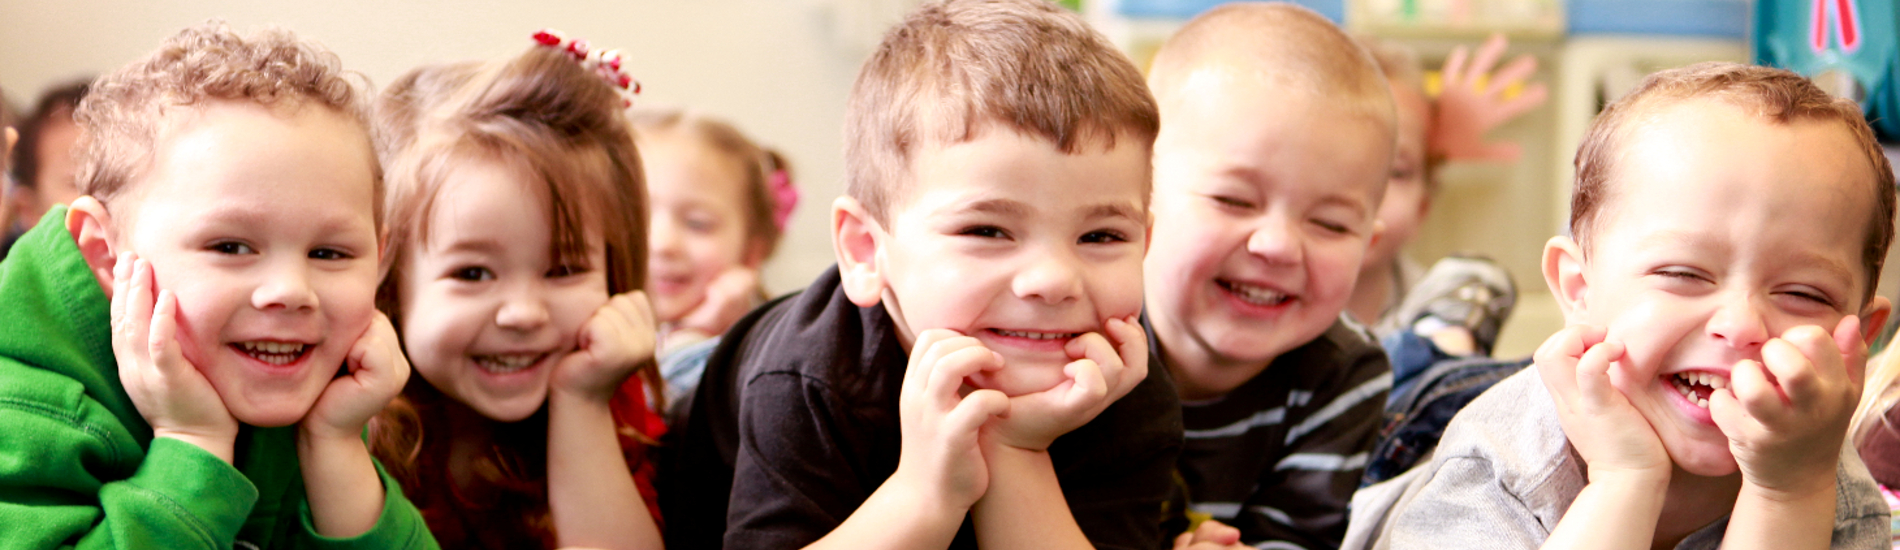 Preschool Classes Offered Daily – Now Enrolling For Fall!